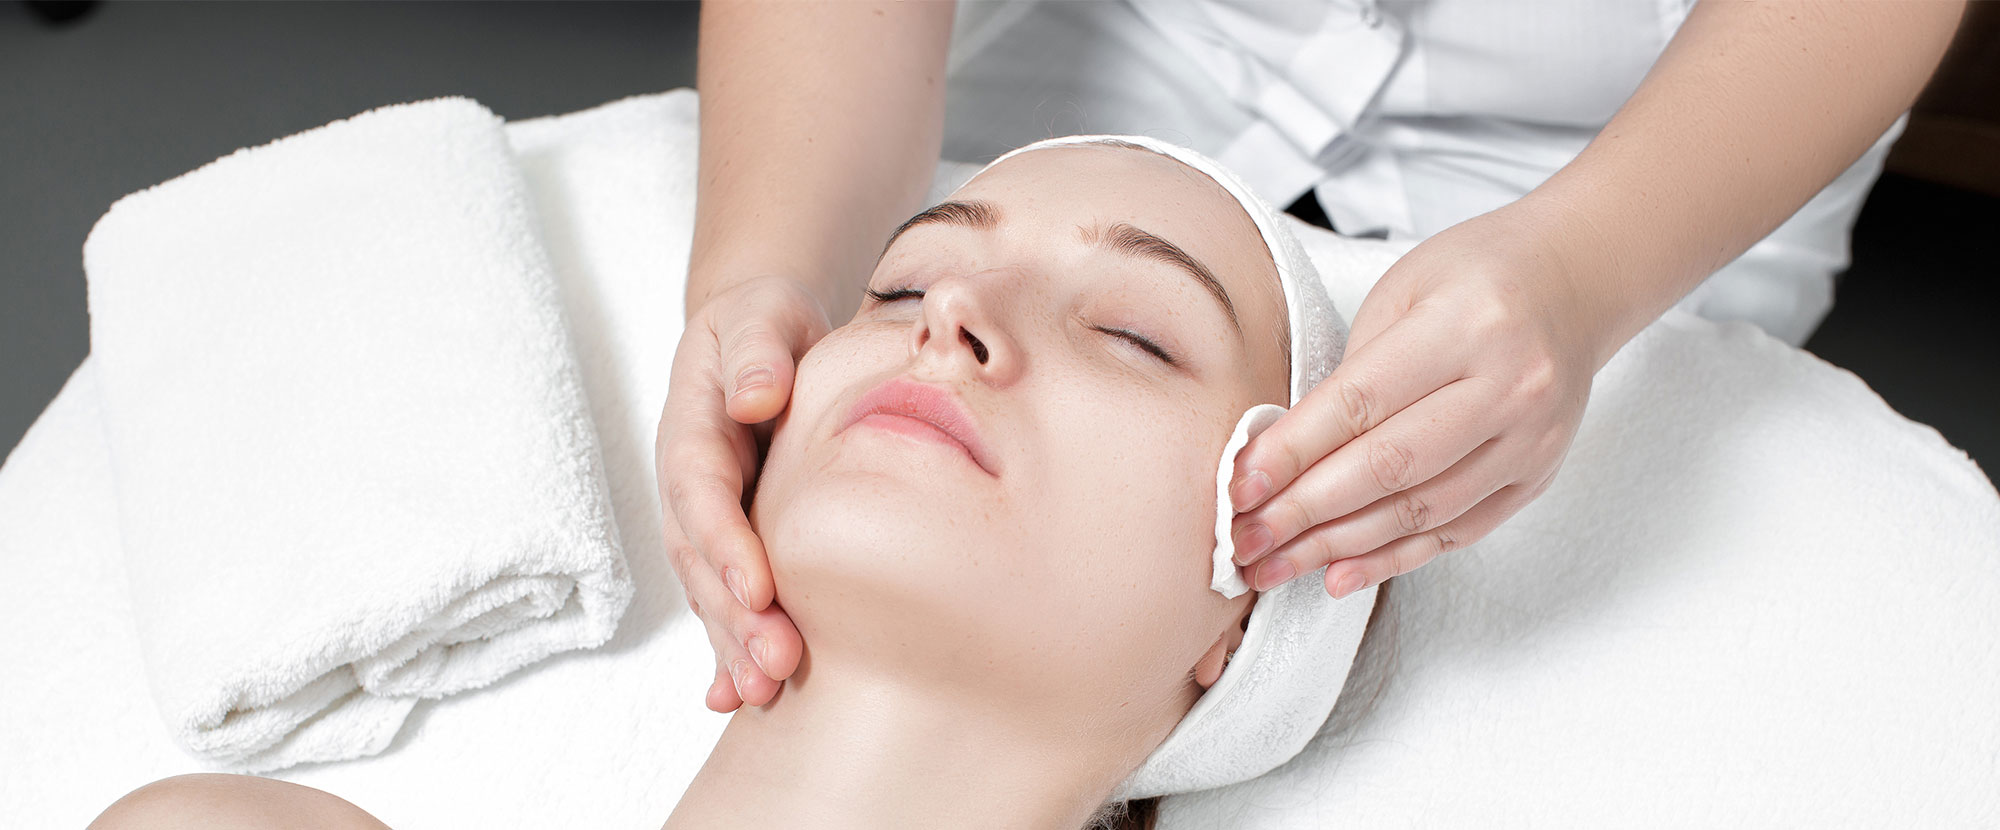 Atelier Esthetique Institute of Esthetics | New York, NY